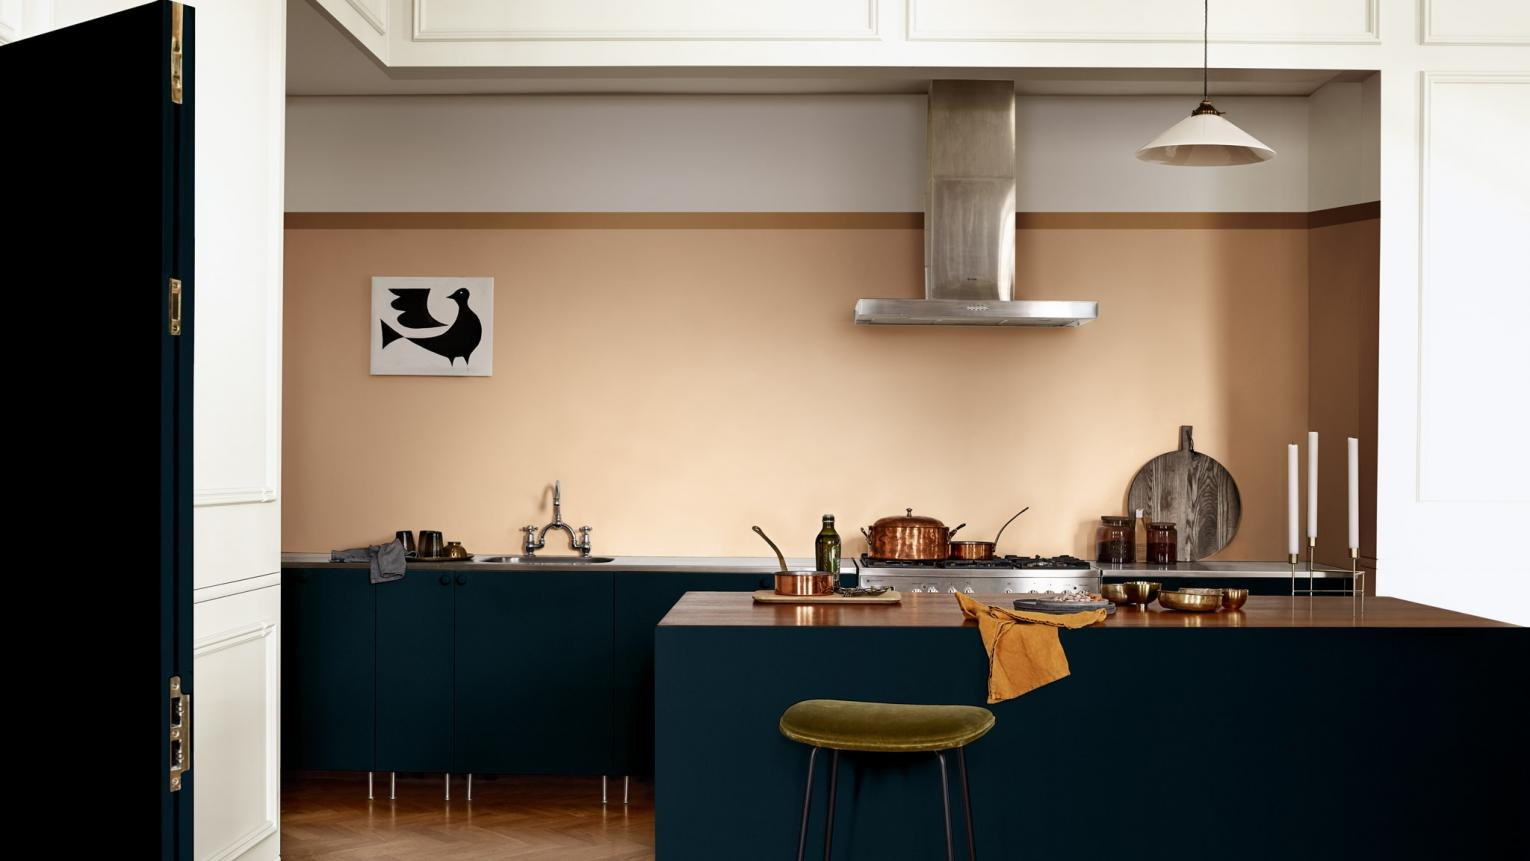 Deco-Paints-Colour-Futures-Colour-of-the-Year-2019-A-place-to-think-Kitchen-Inspiration-26